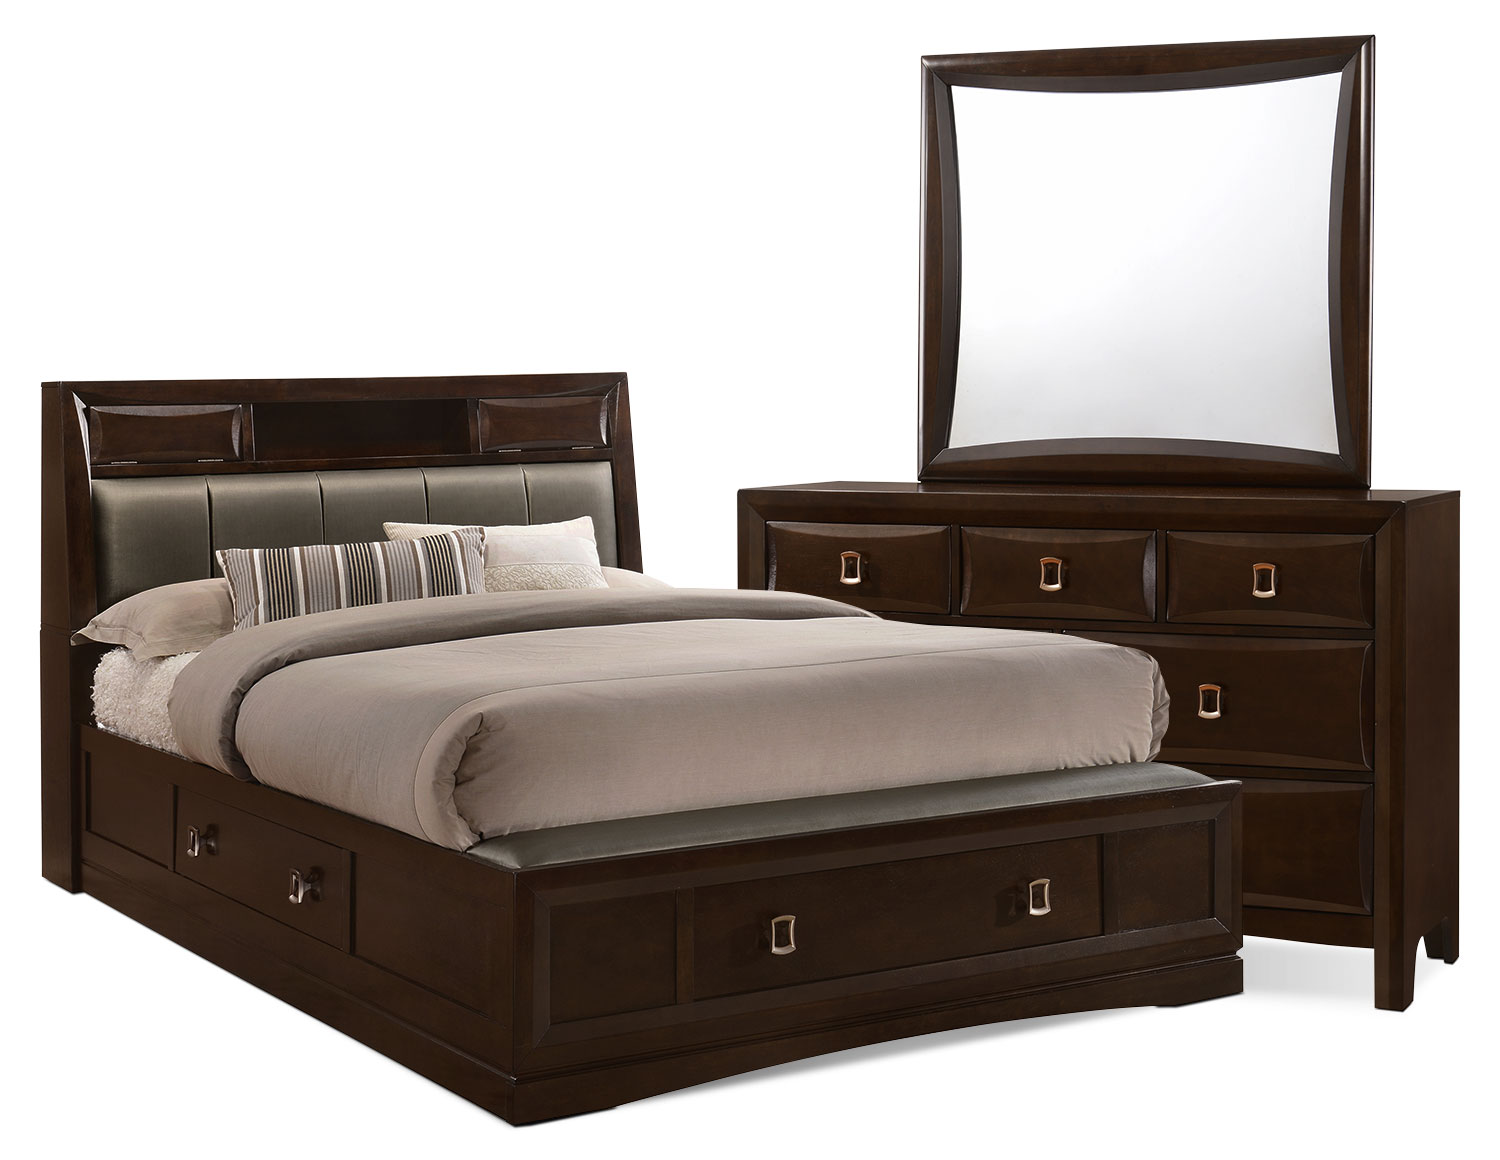 Bedroom Furniture - Bella 5-Piece King Bookcase Storage Bedroom Collection